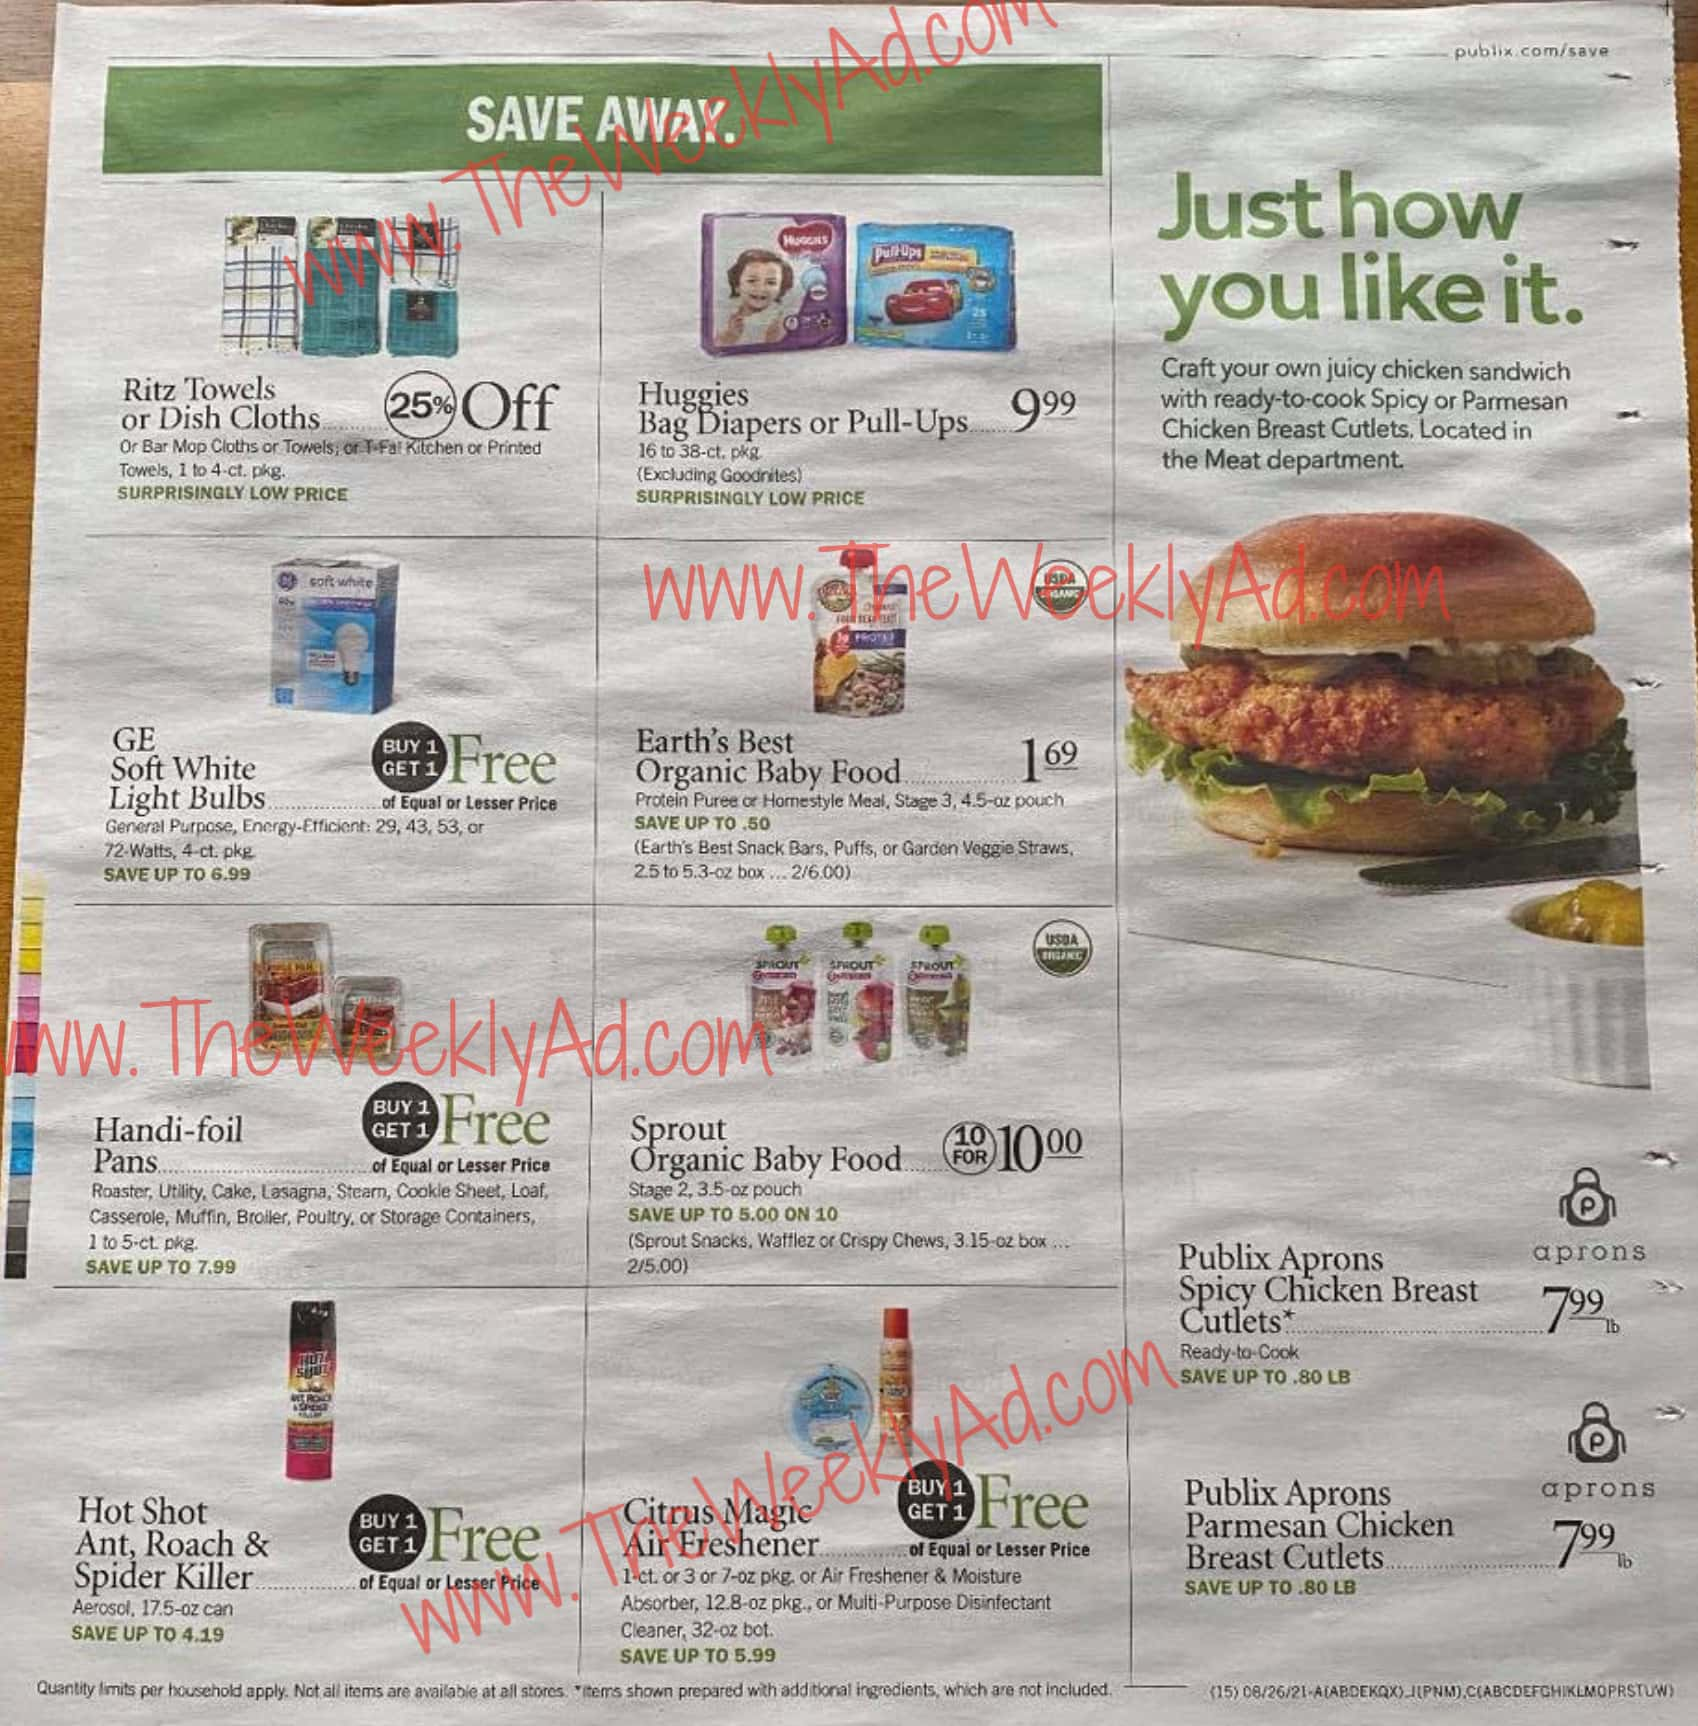 publix_weekly_ad_082521_15